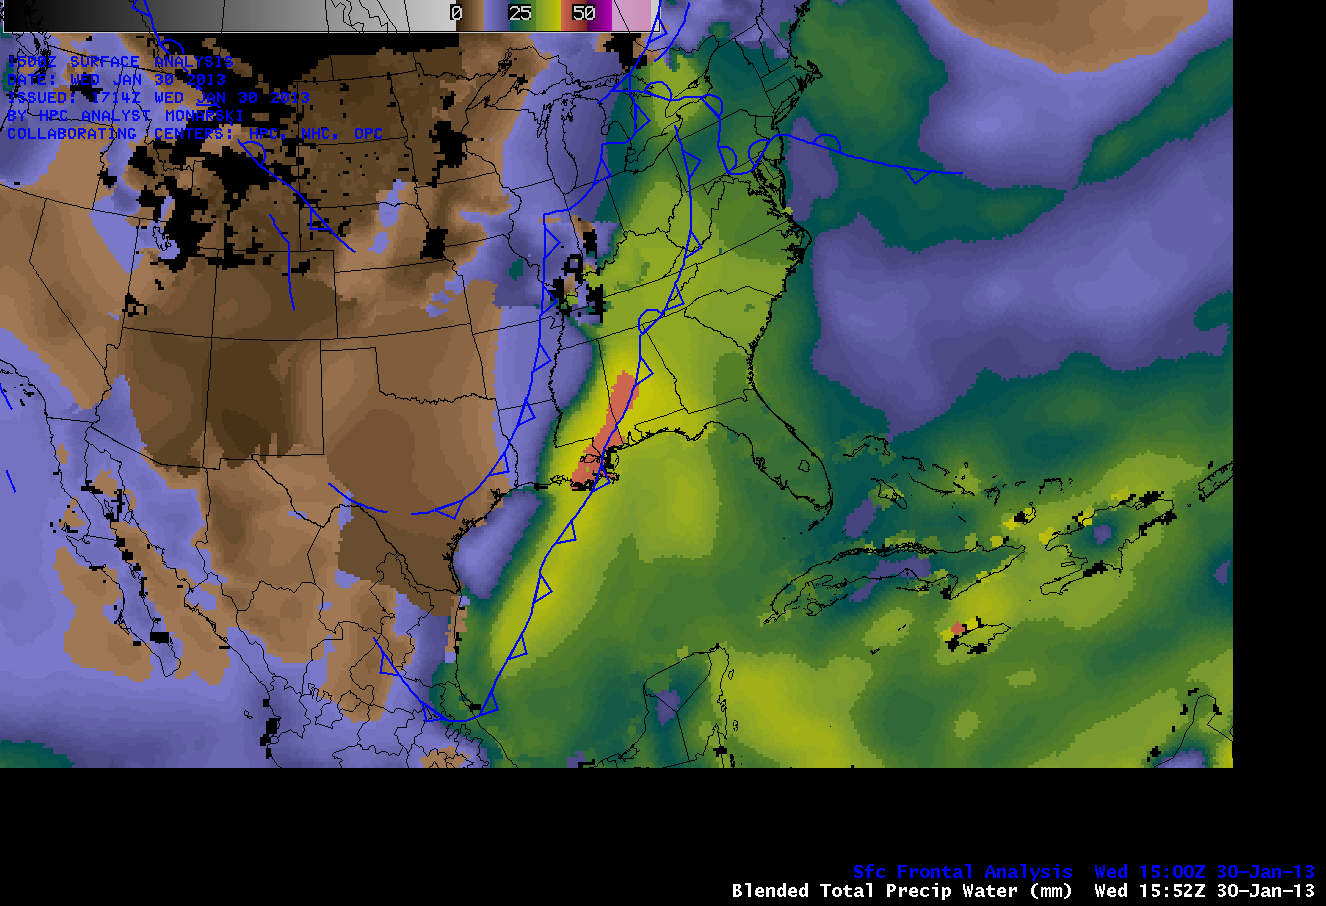 Blended Total Precipitable Water and Surface frontal analysis